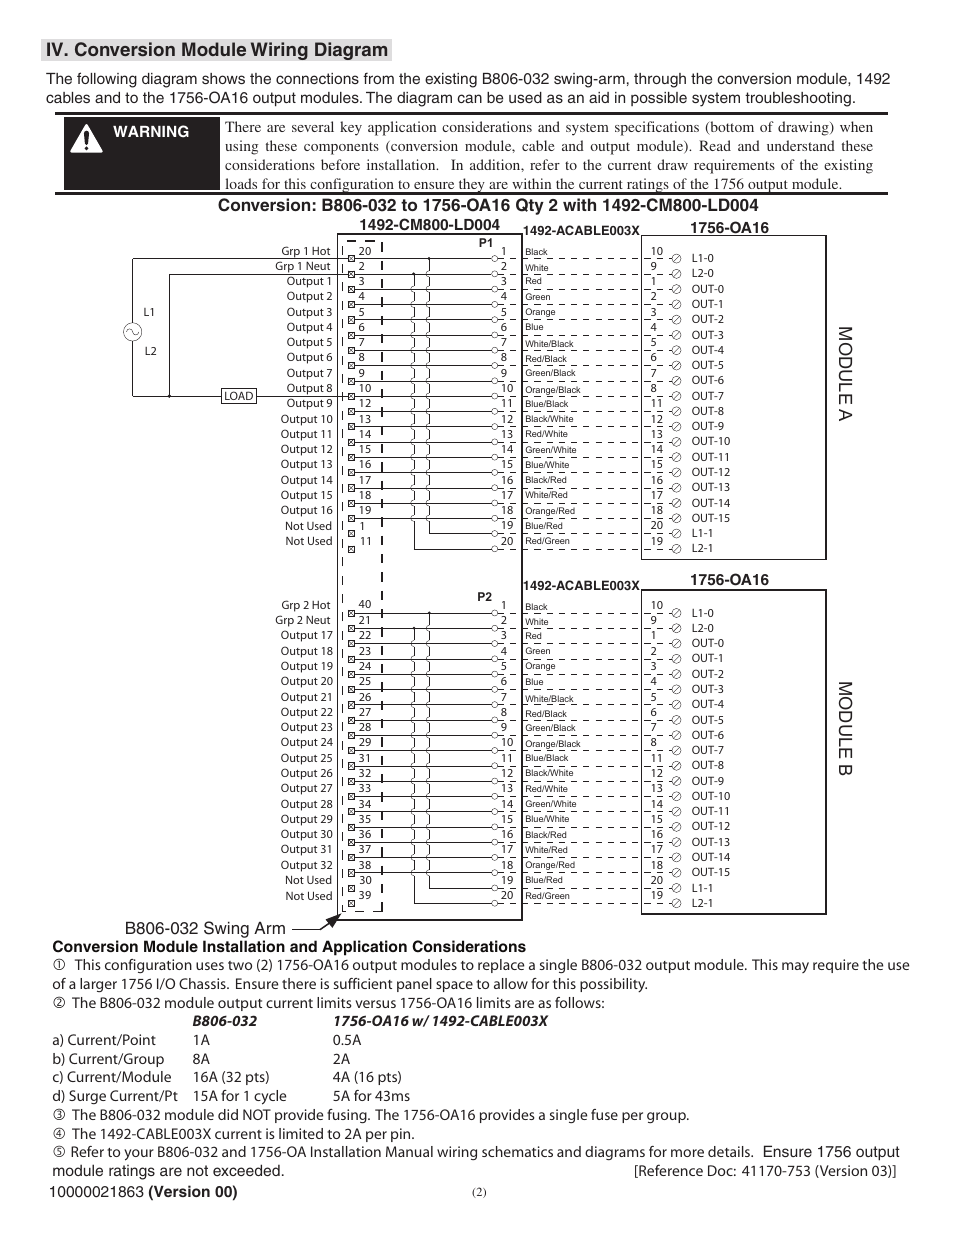 rockwell automation 1492 cm800 ld004 field wire conv module for modicon b806 032 to 1756 oa16 page2?resize\\\=665%2C861 hyosung gt250r wiring diagram beta wiring diagram, tomos wiring wiring diagram for tomos targa lx at readyjetset.co